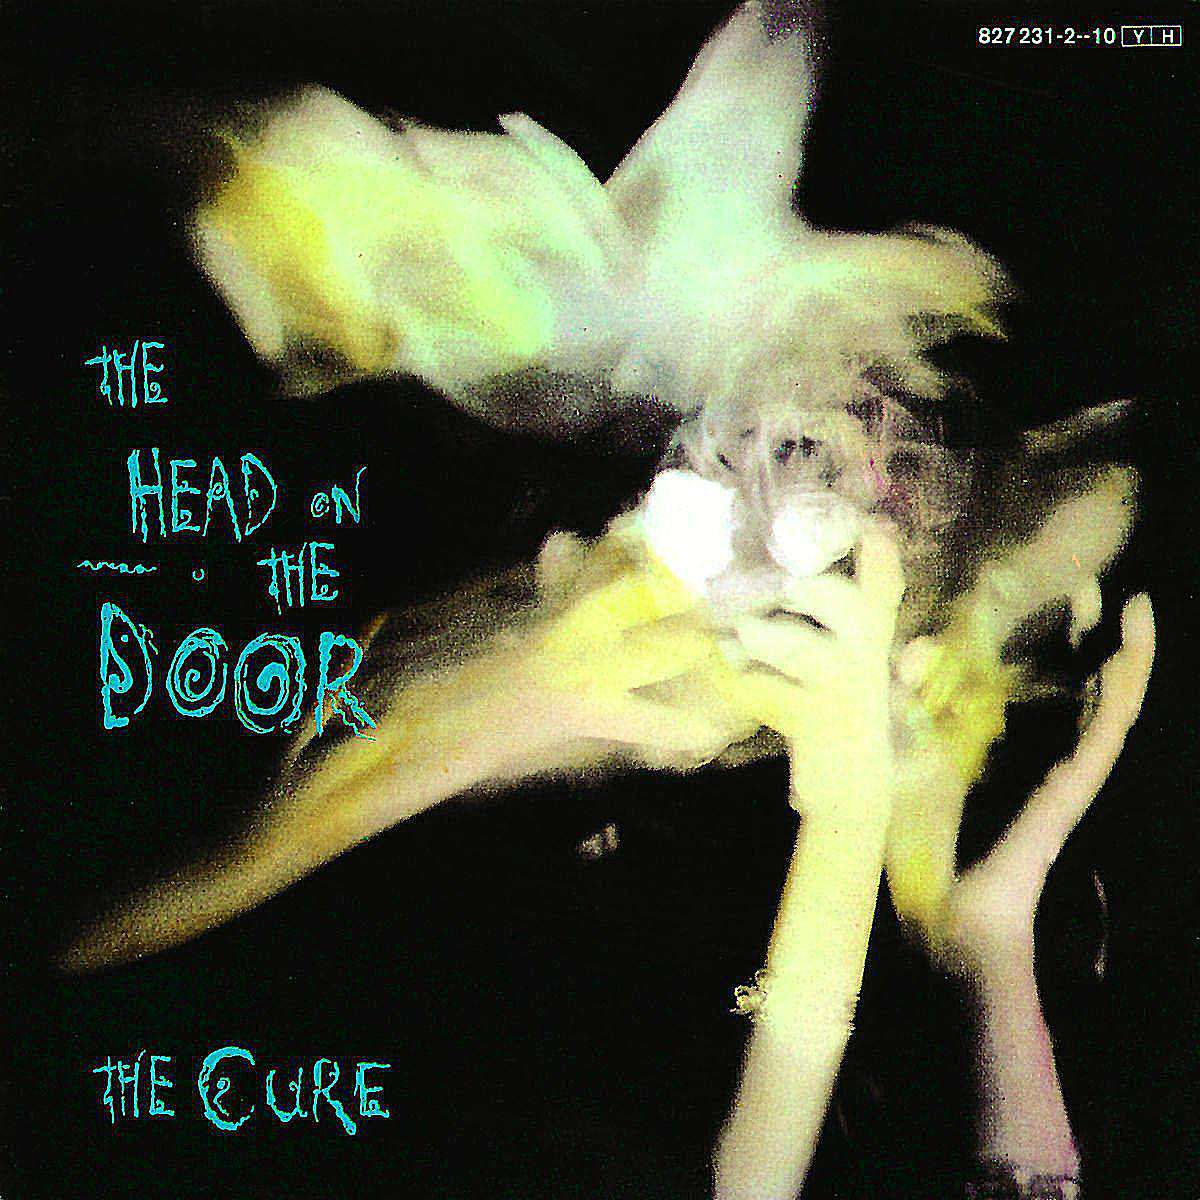 The Cure finally began to enjoy some American success with 1985's 'The Head on the Door.'